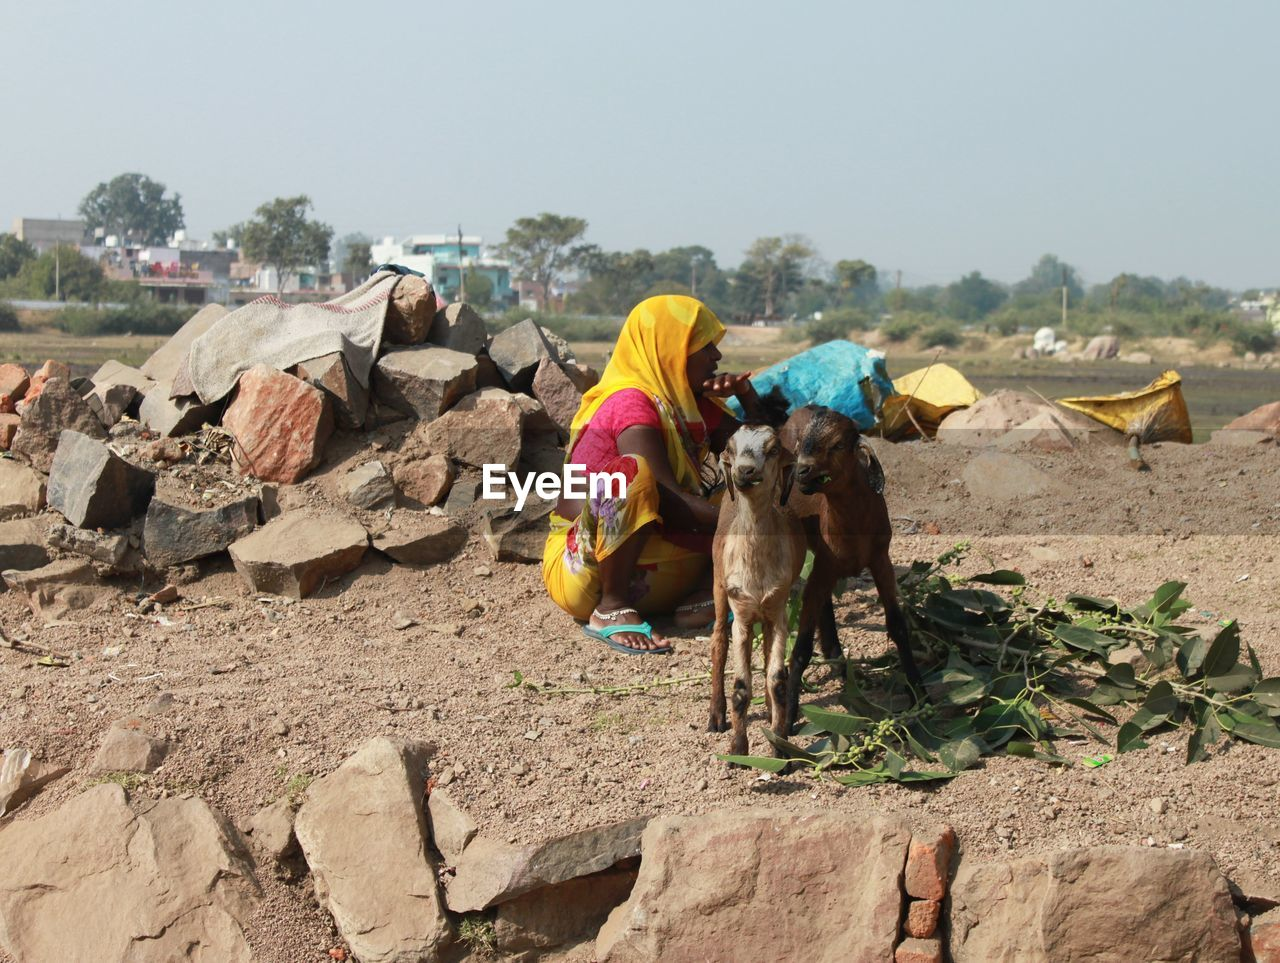 Woman crouching by goats on land against clear sky